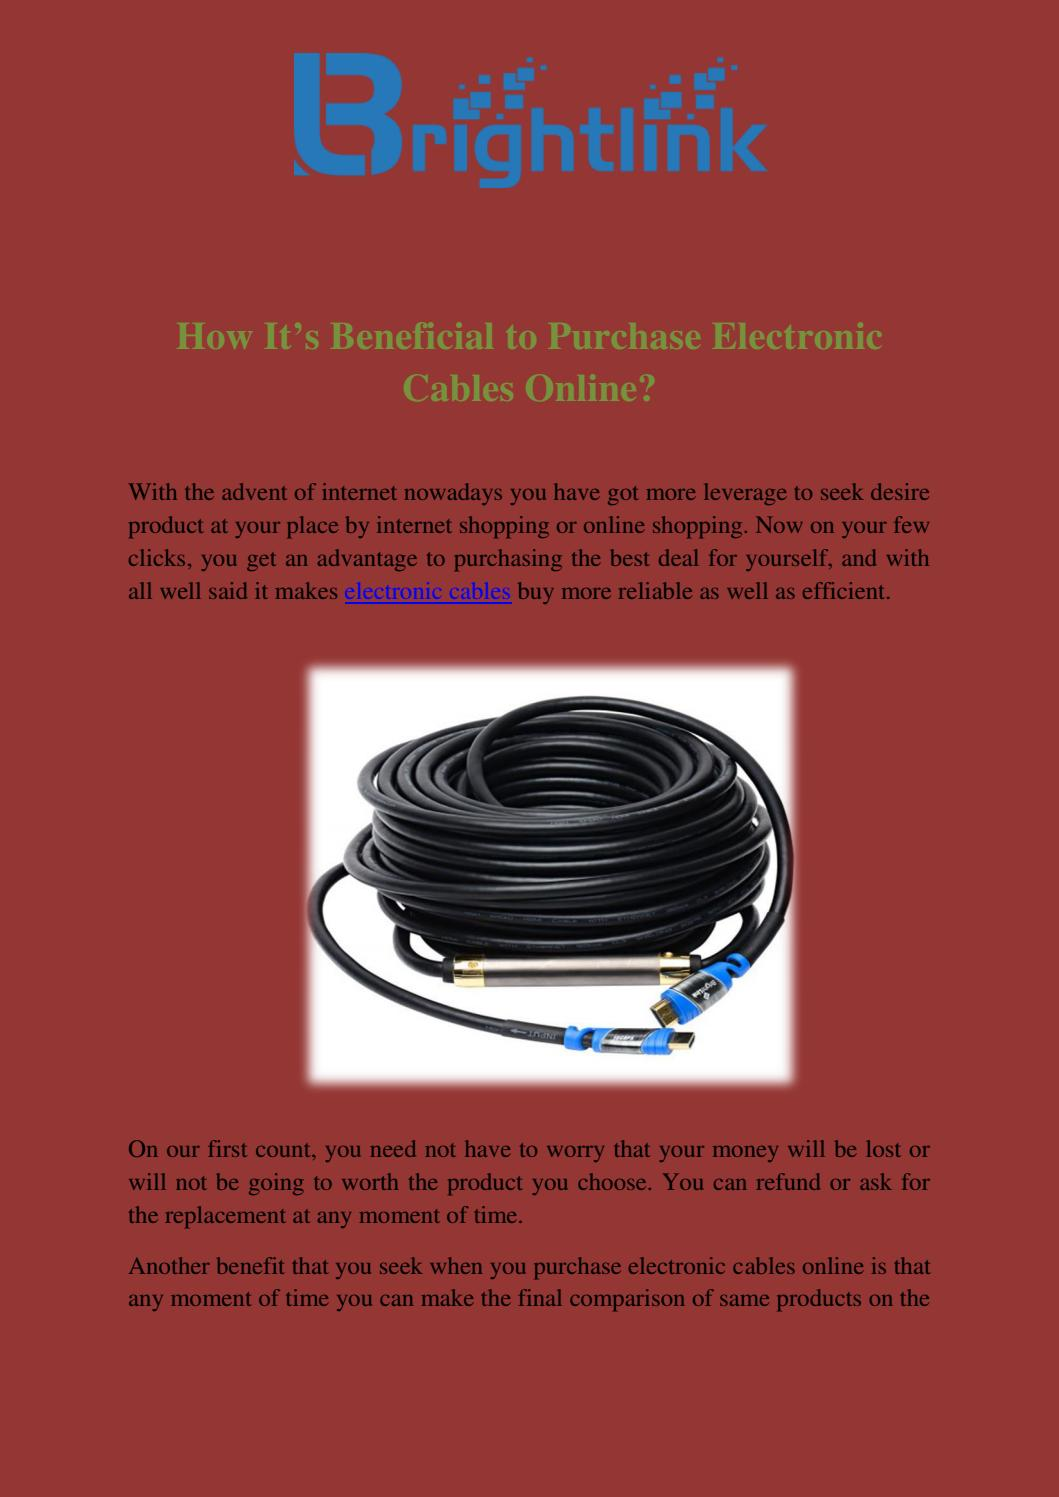 How Its Beneficial To Purchase Electronic Cables Online By Wiring Yourself Money Brightlinkcables Issuu